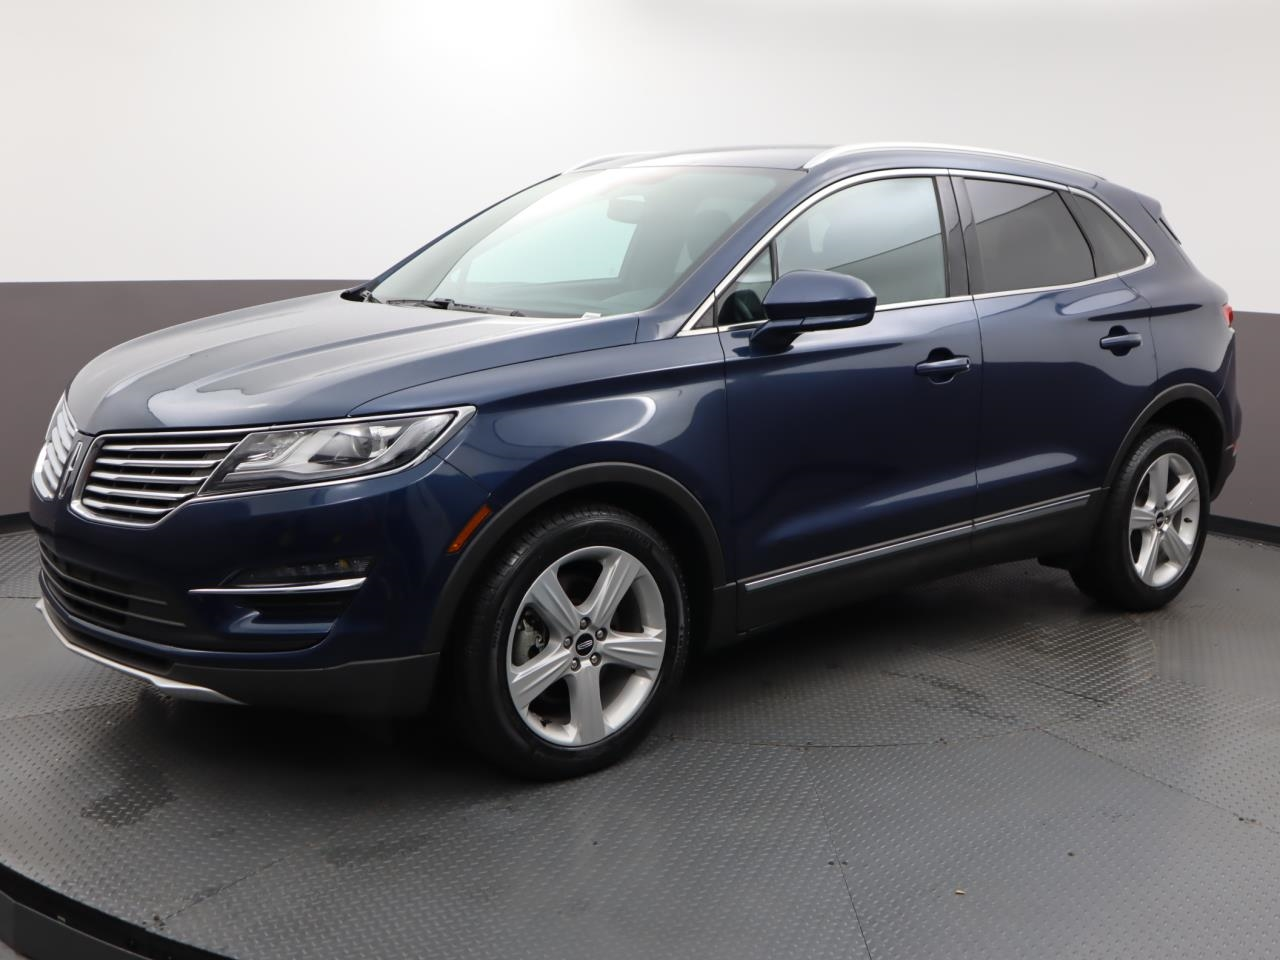 Used LINCOLN MKC 2017 MARGATE PREMIERE